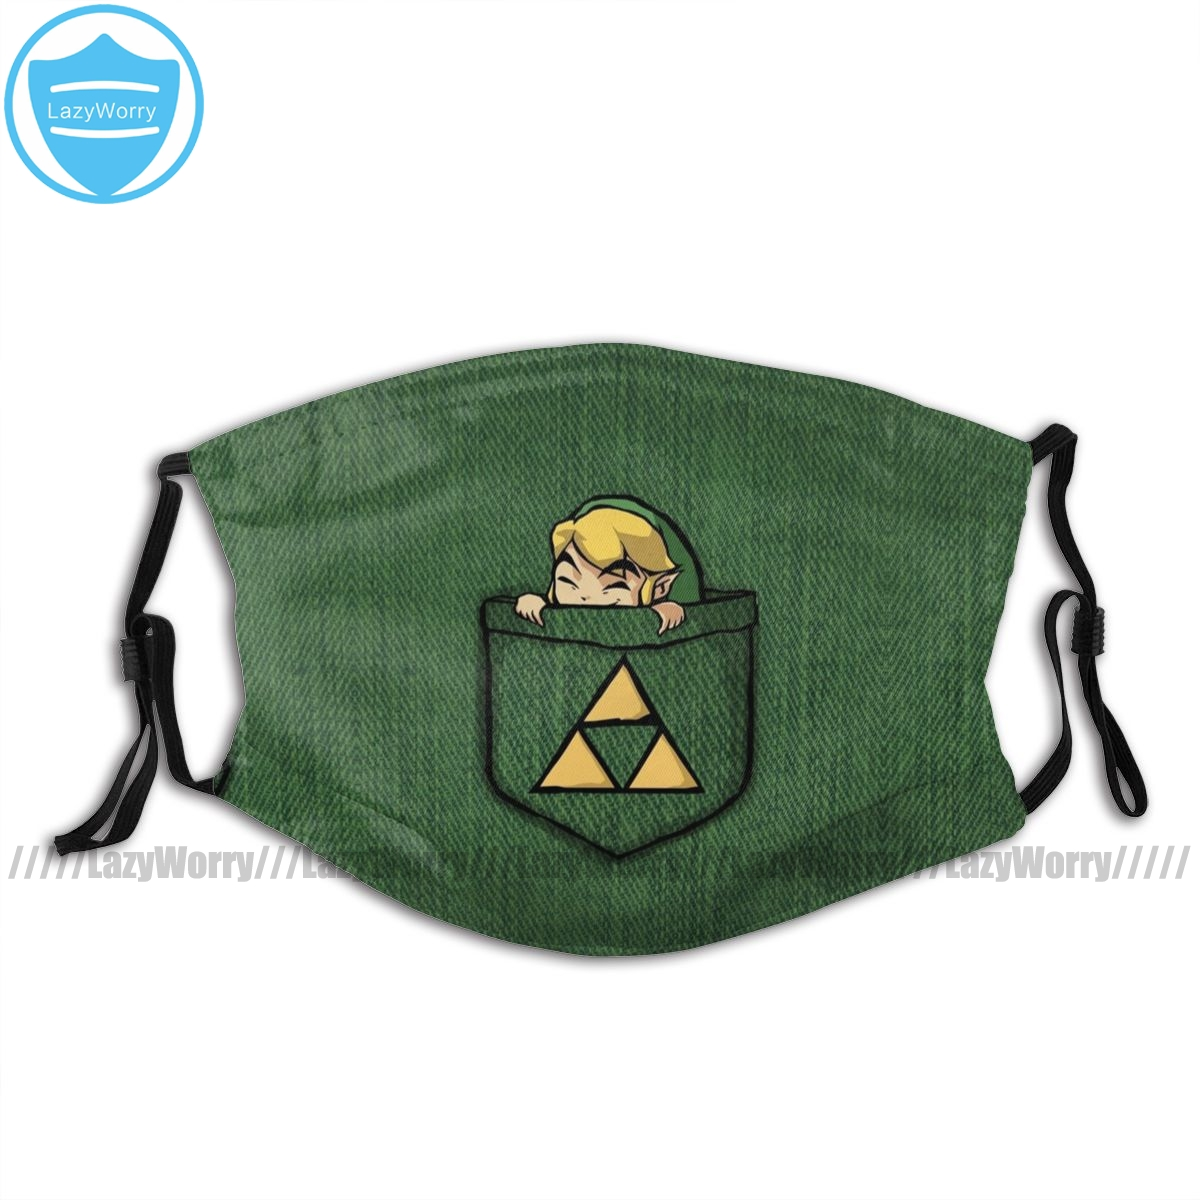 Legend Of Zelda Mouth Face Mask Legend Of Zelda Pocket Link Facial Mask Funny Kawai With 2 Filters For Adult